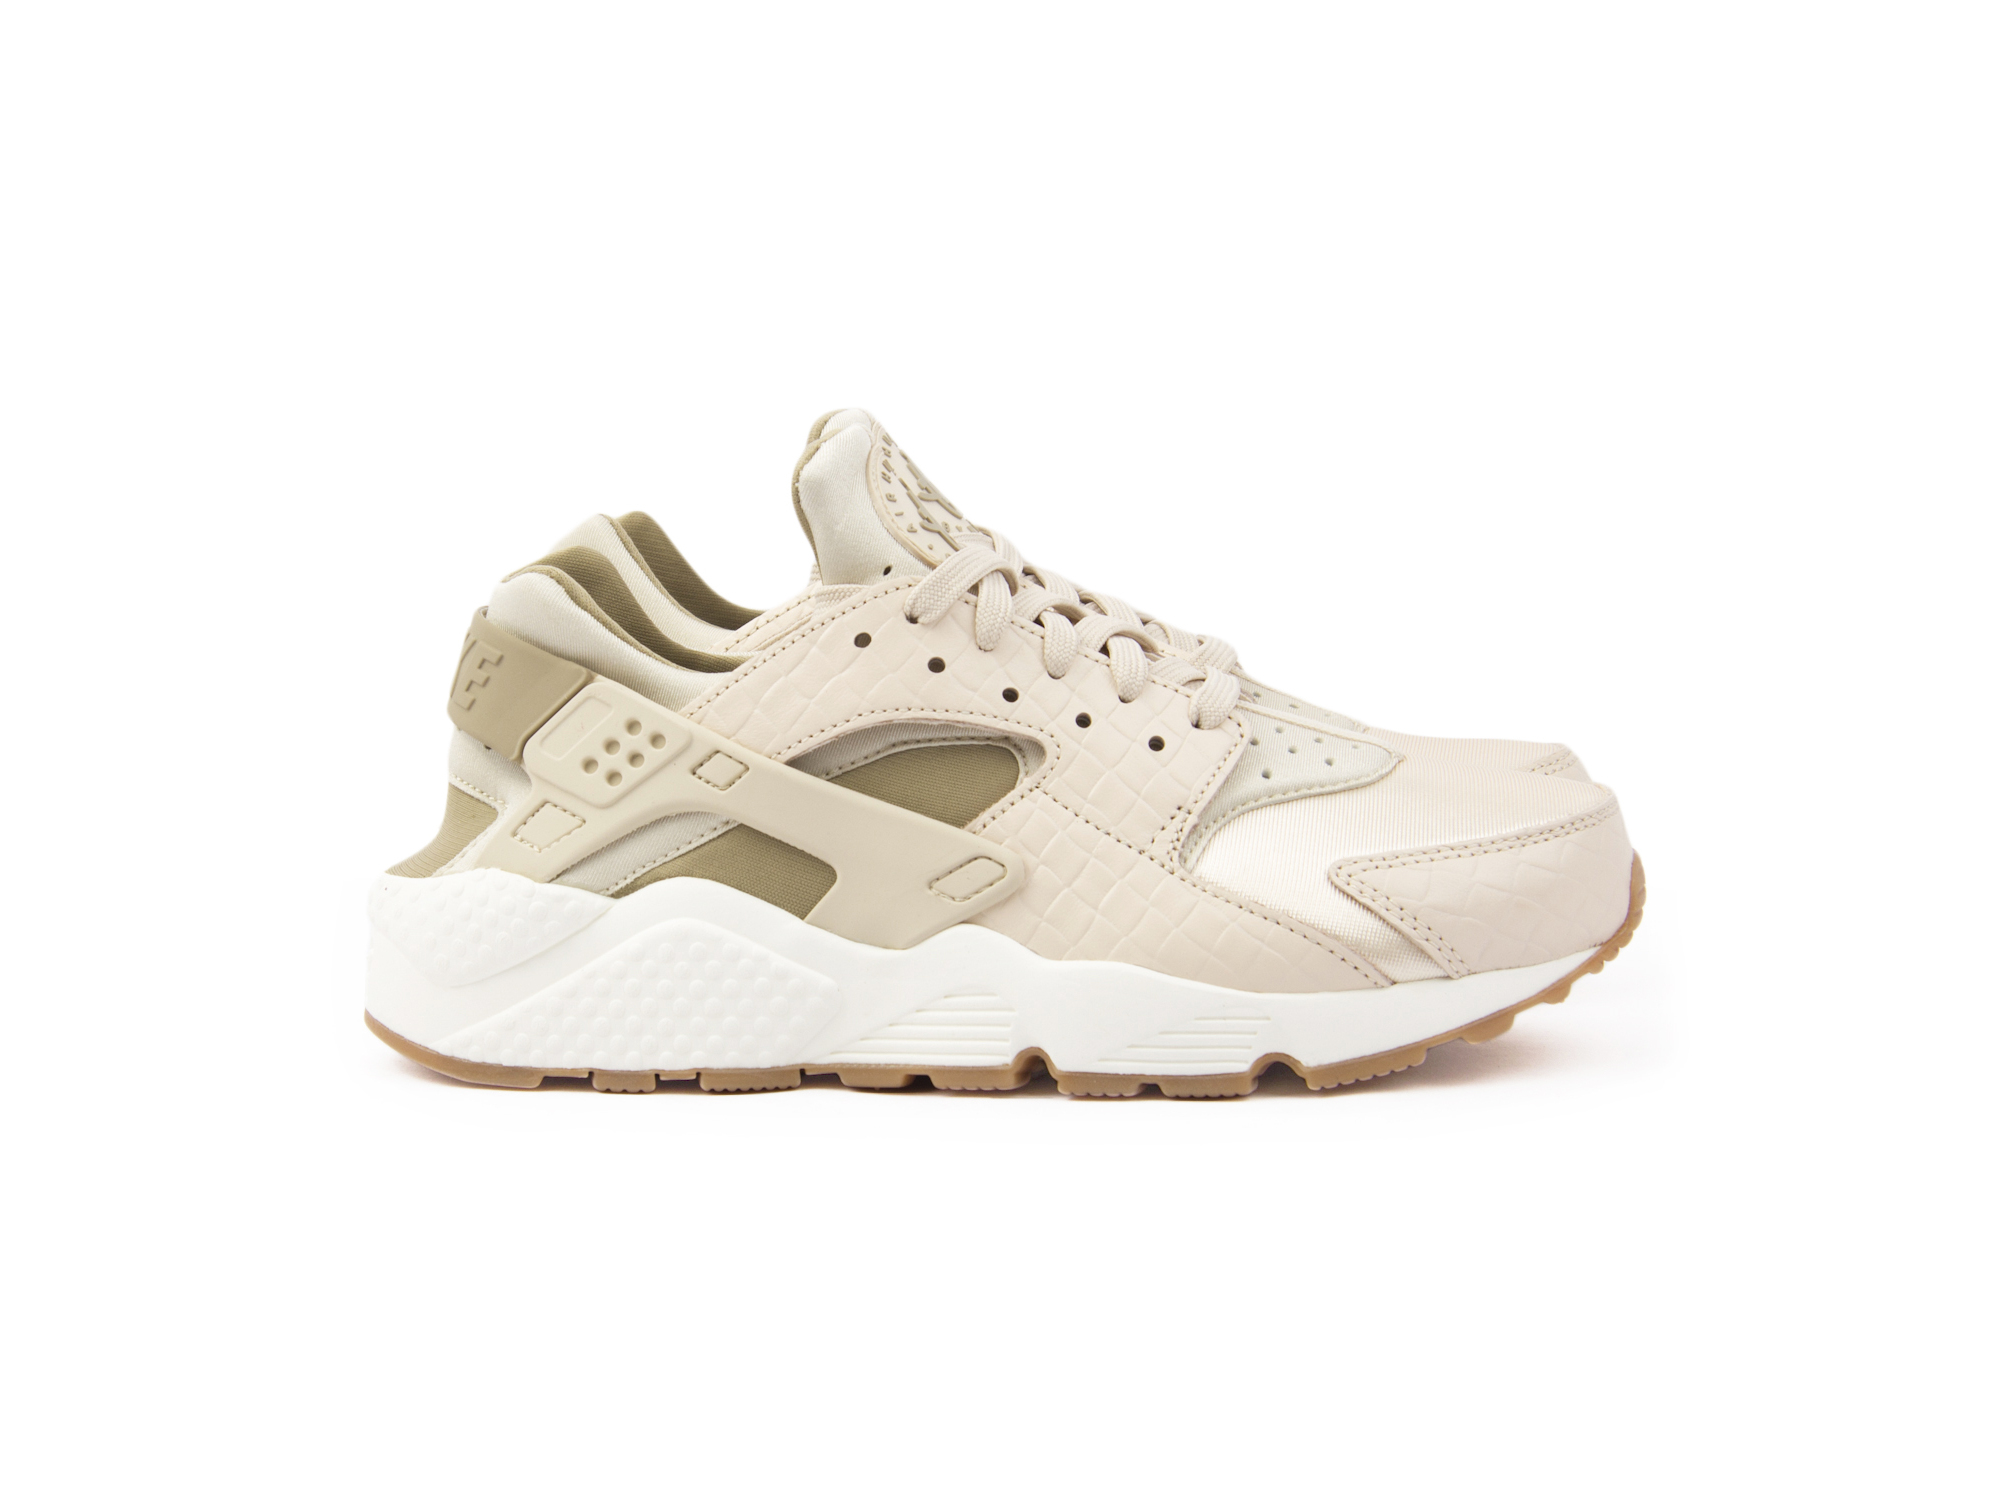 Run PrmAge AdulteCo Run Nike Nike Huarache Huarache VpqUzMS